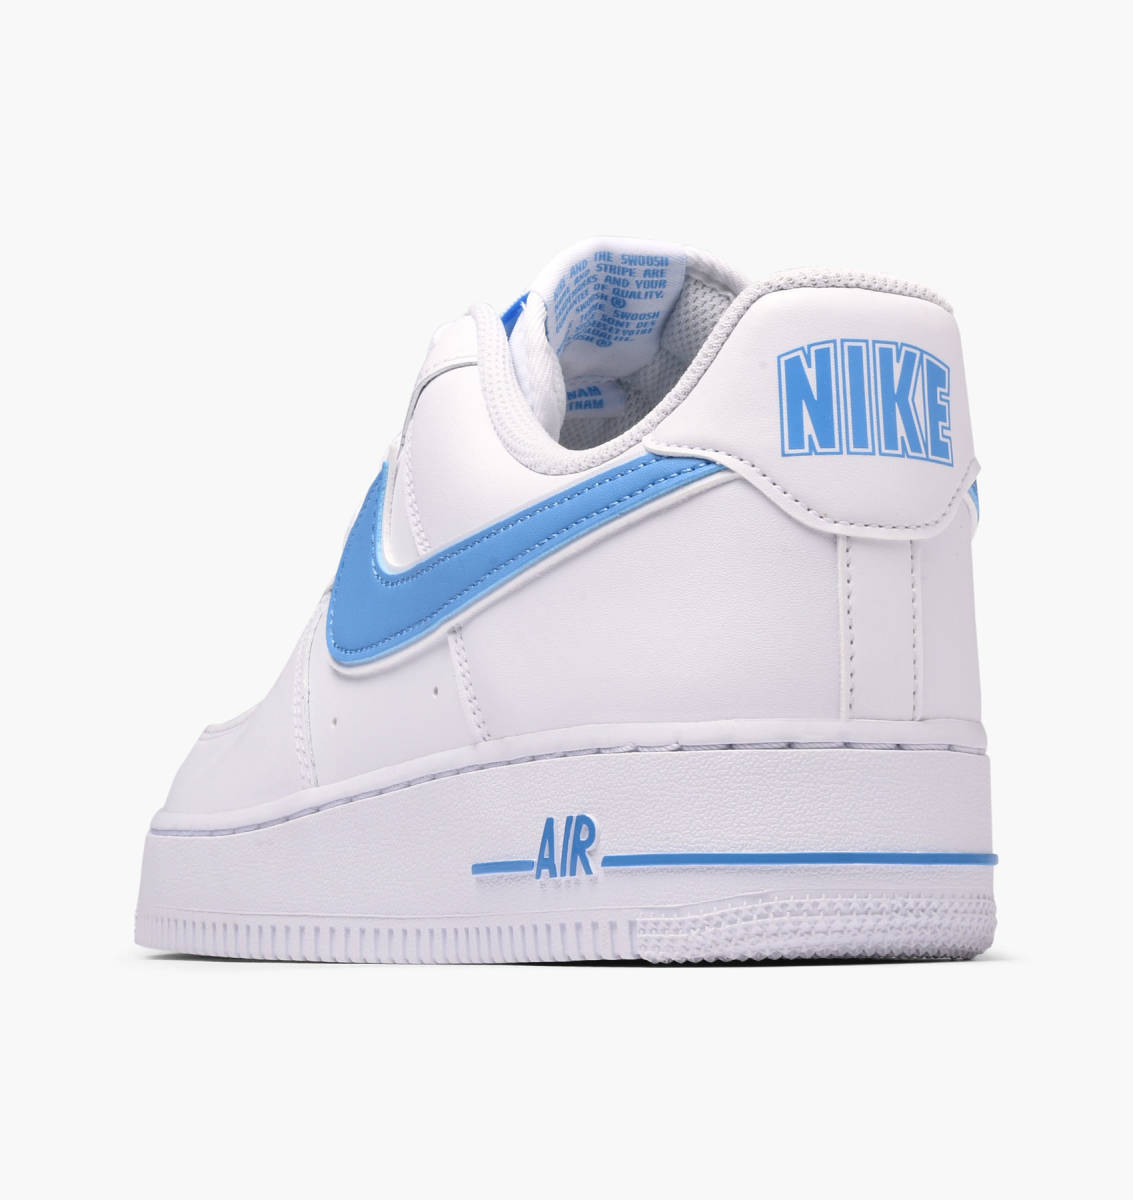 premium selection 46789 b5e03 Nike Air Force 1 07 3 in weiss - AO2423 100  everysize